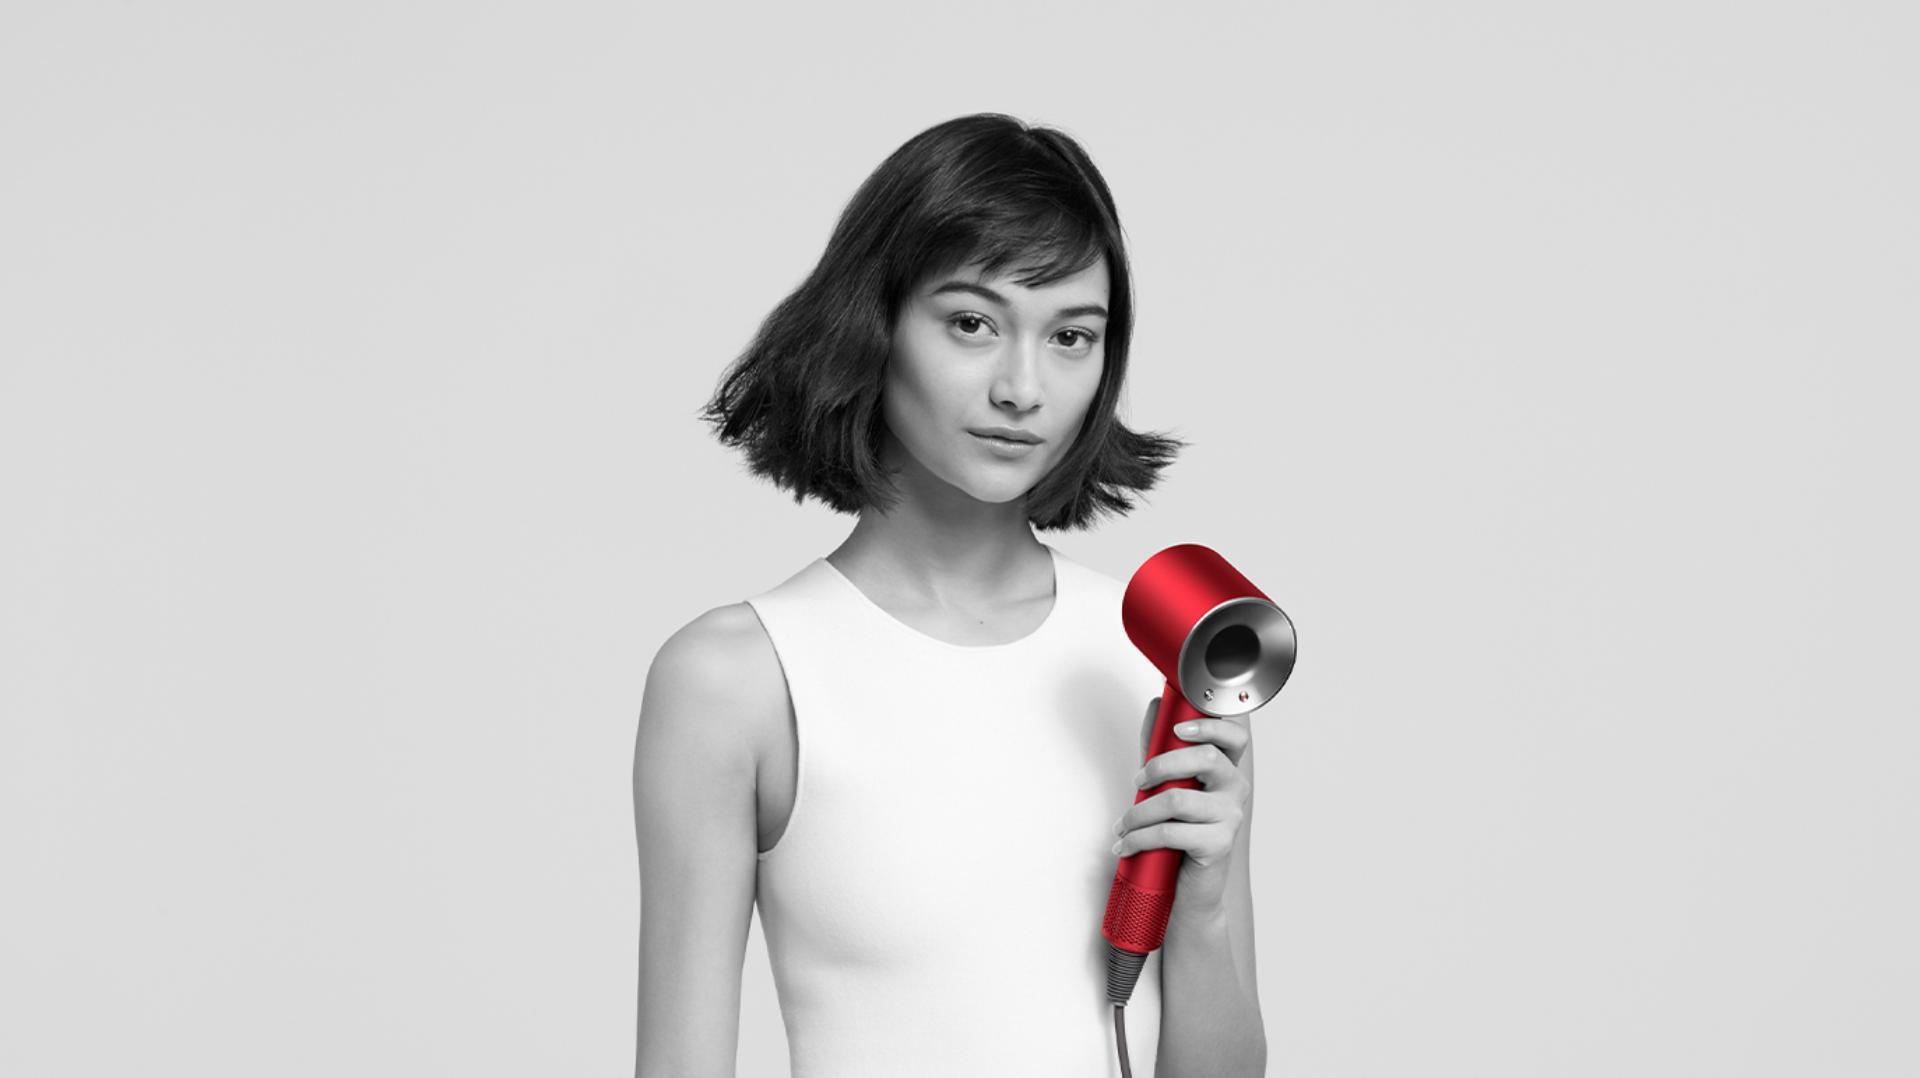 Limited edition Dyson Supersonic